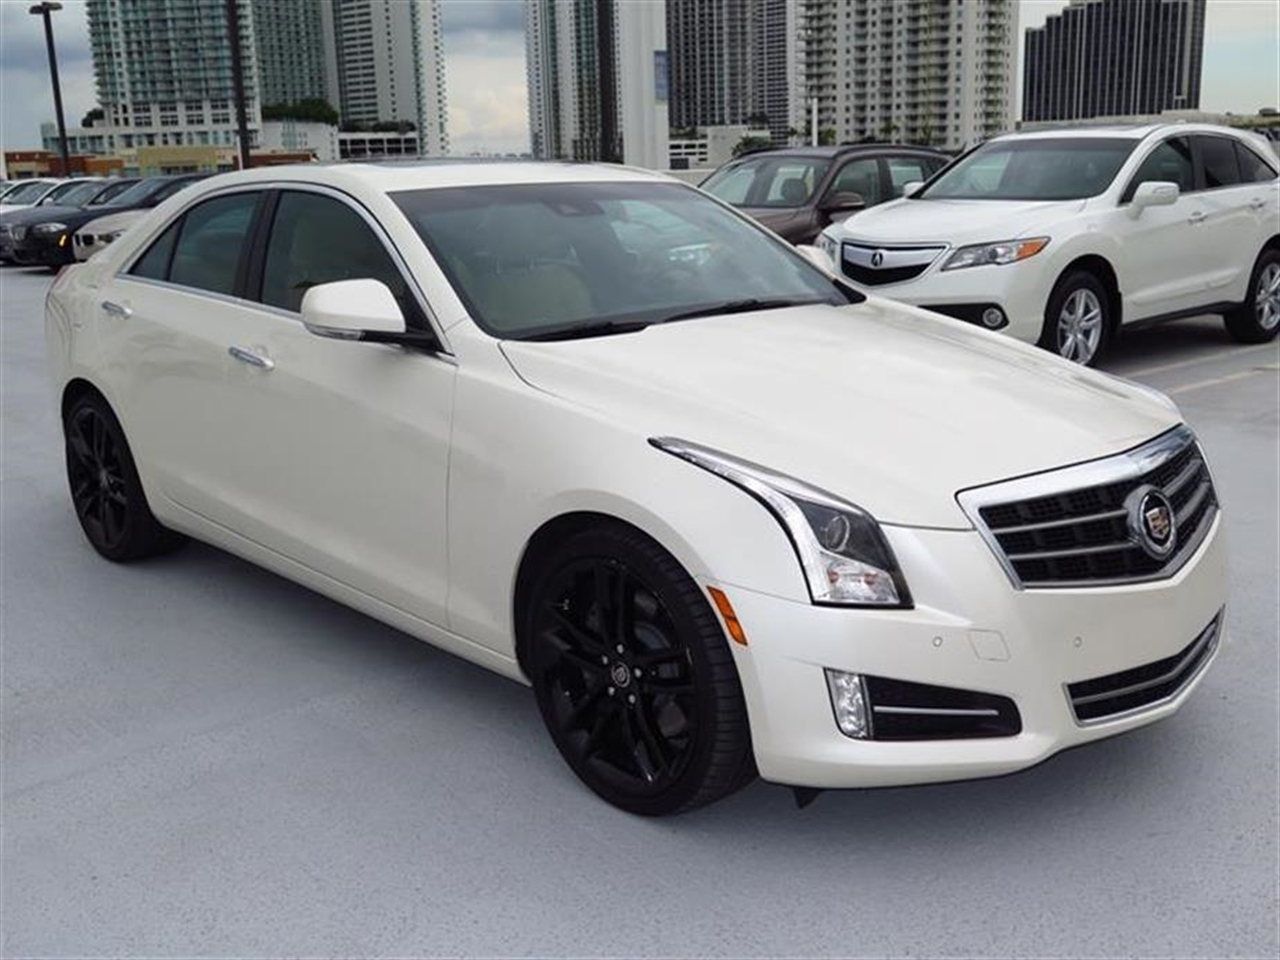 2013 CADILLAC ATS 4dr Sdn 20L Performance RWD 10008 miles Adaptive Remote Start Not available wi